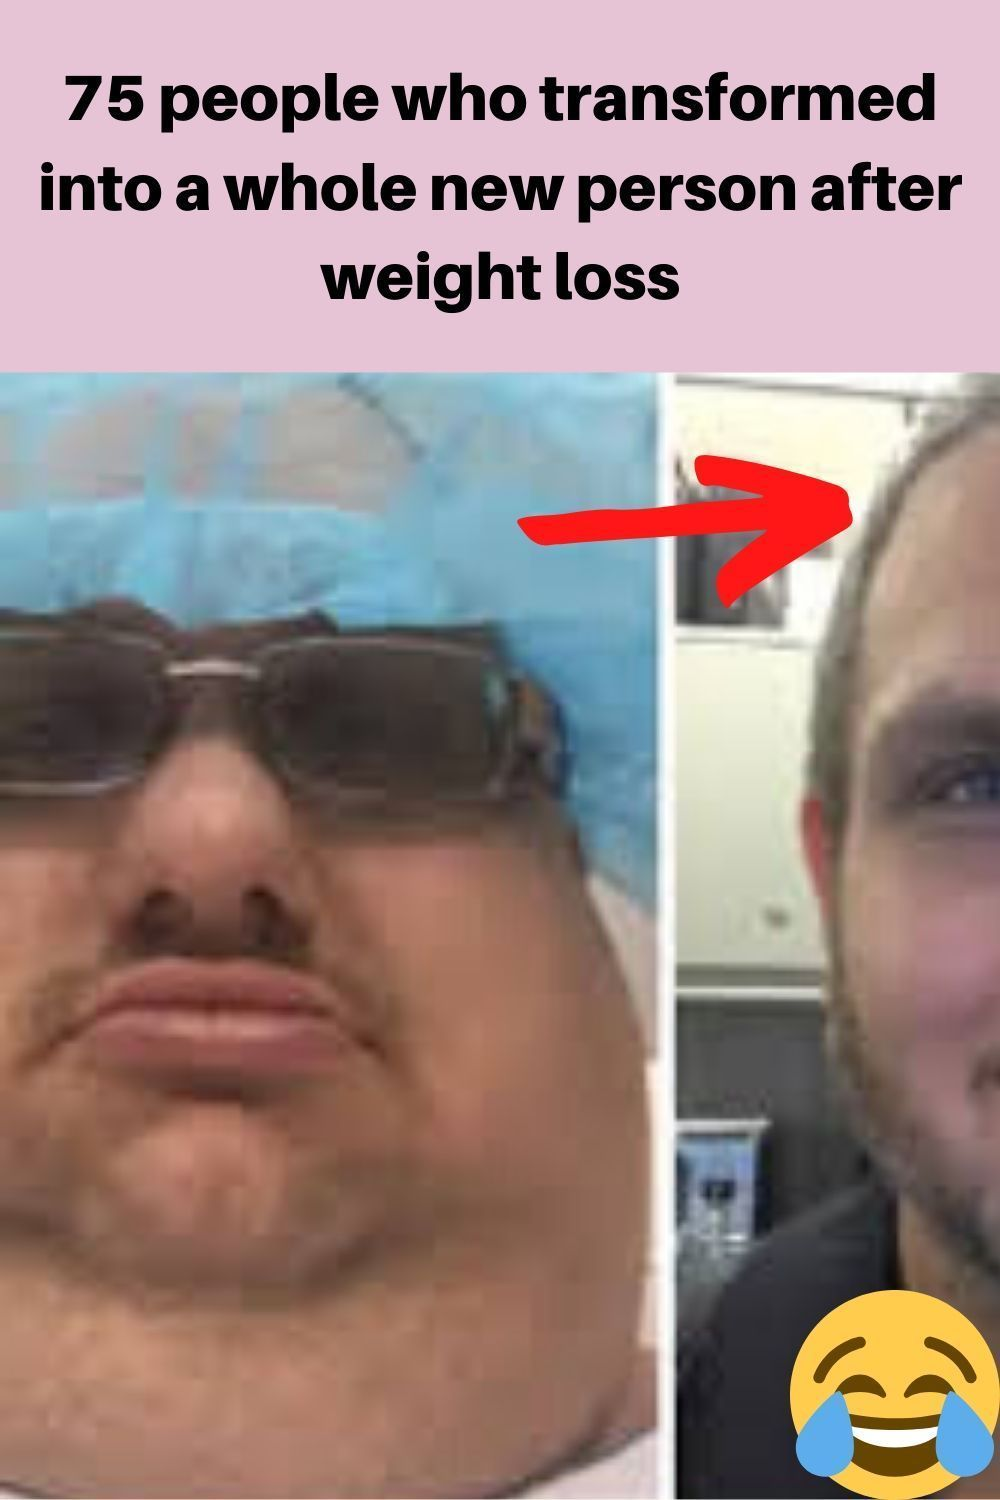 75 people who surprised everyone by losing so much weight they transformed into a